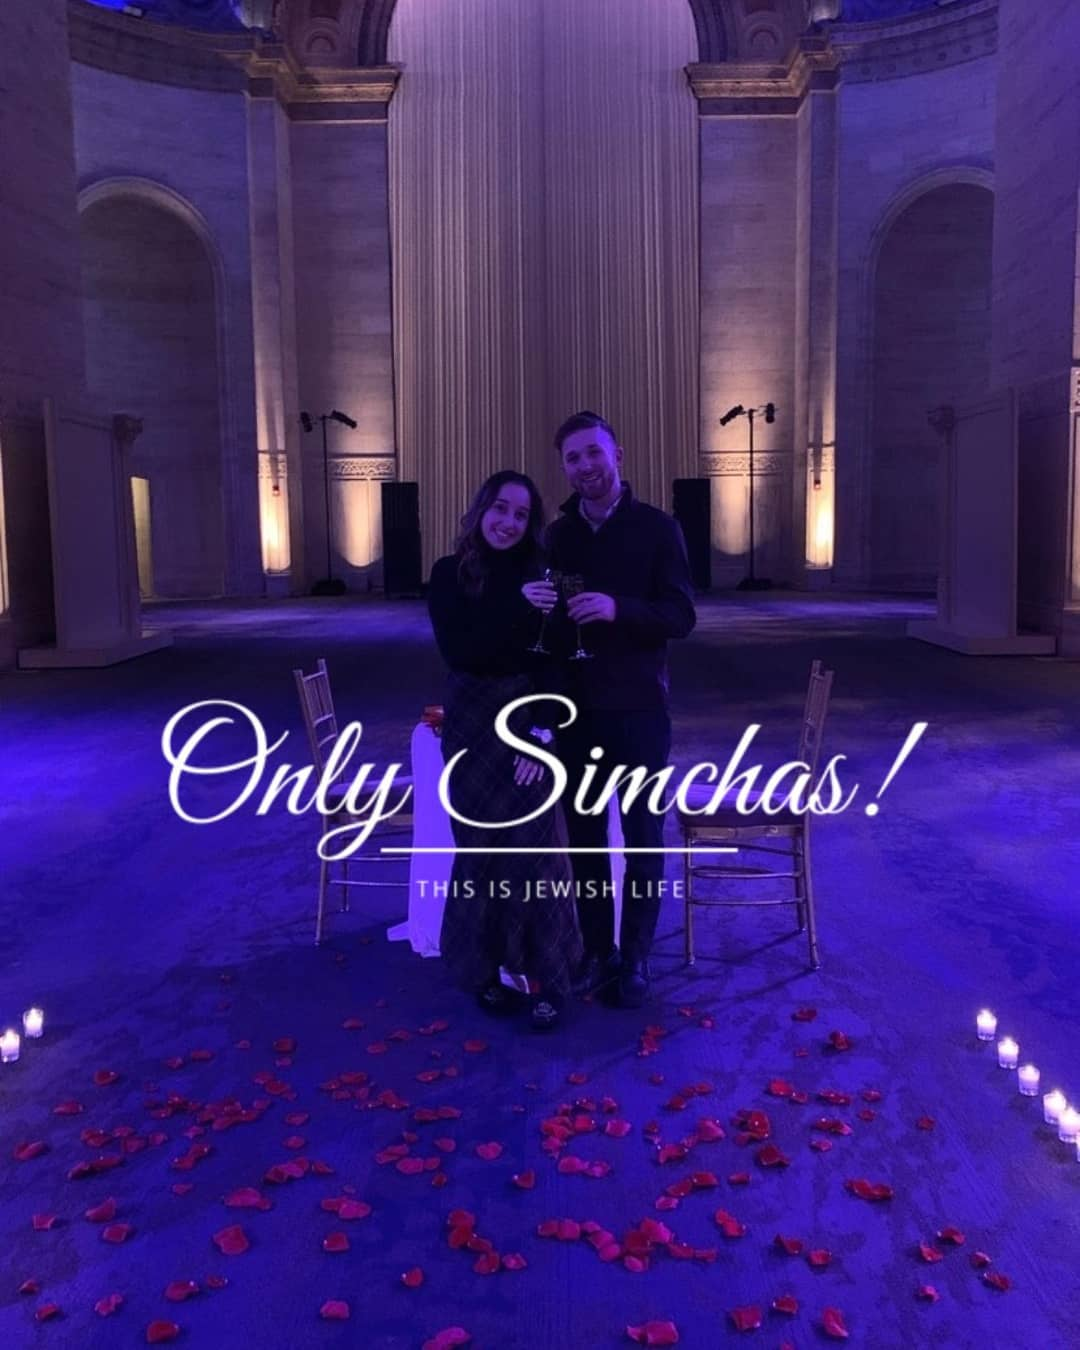 Engagement of Daniel Katz (#Memphis) to Meira Hardoon (#NewYork) #onlysimchas